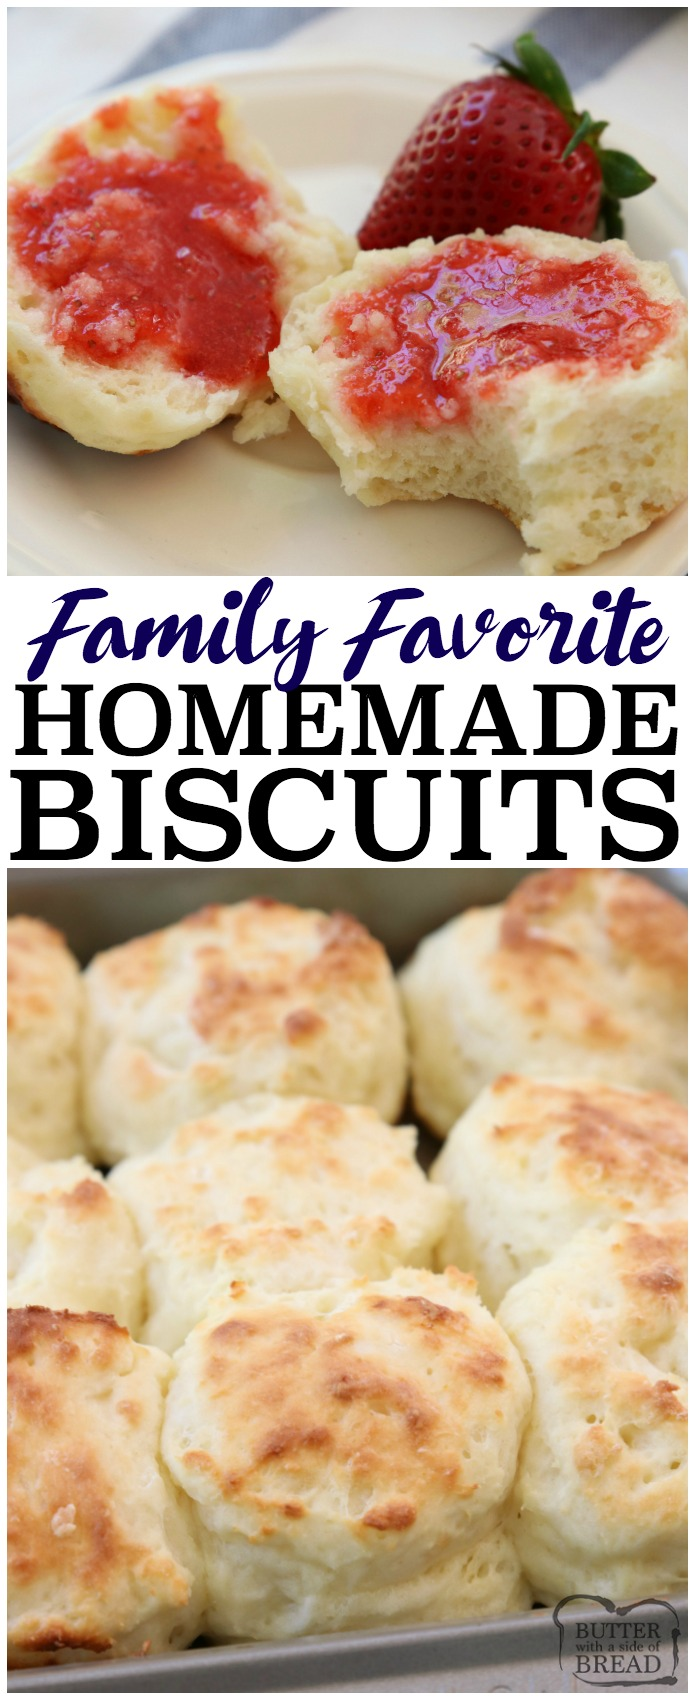 Easy Sour Cream Biscuit Recipe made from scratch in minutes with common ingredients. Perfect soft, flaky texture with fantastic butter flavor. This will be your new favorite biscuit recipe! #homemade #biscuit #recipe #biscuits #bake #food #dinner #bread #quickbread from BUTTER WITH A SIDE OF BREAD